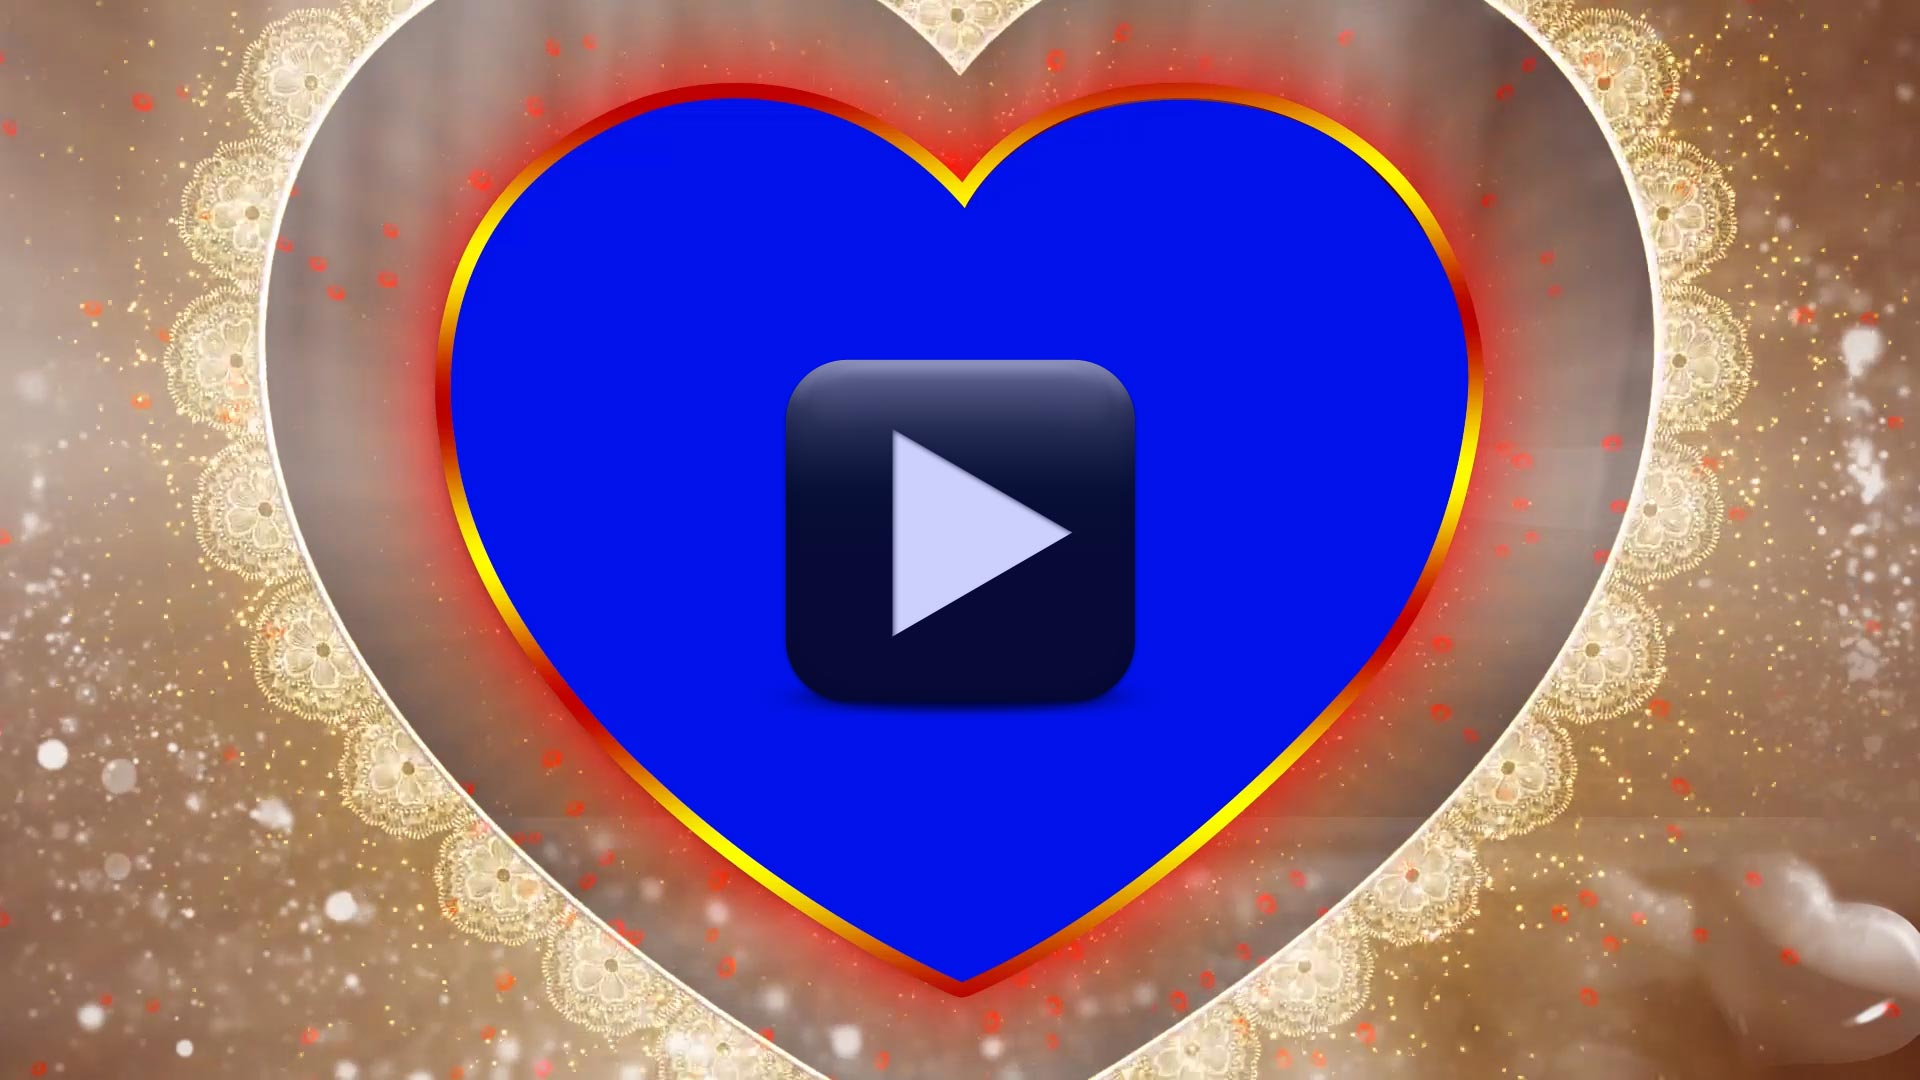 100+Free Wedding Background Video Effects In HD | All Design Creative